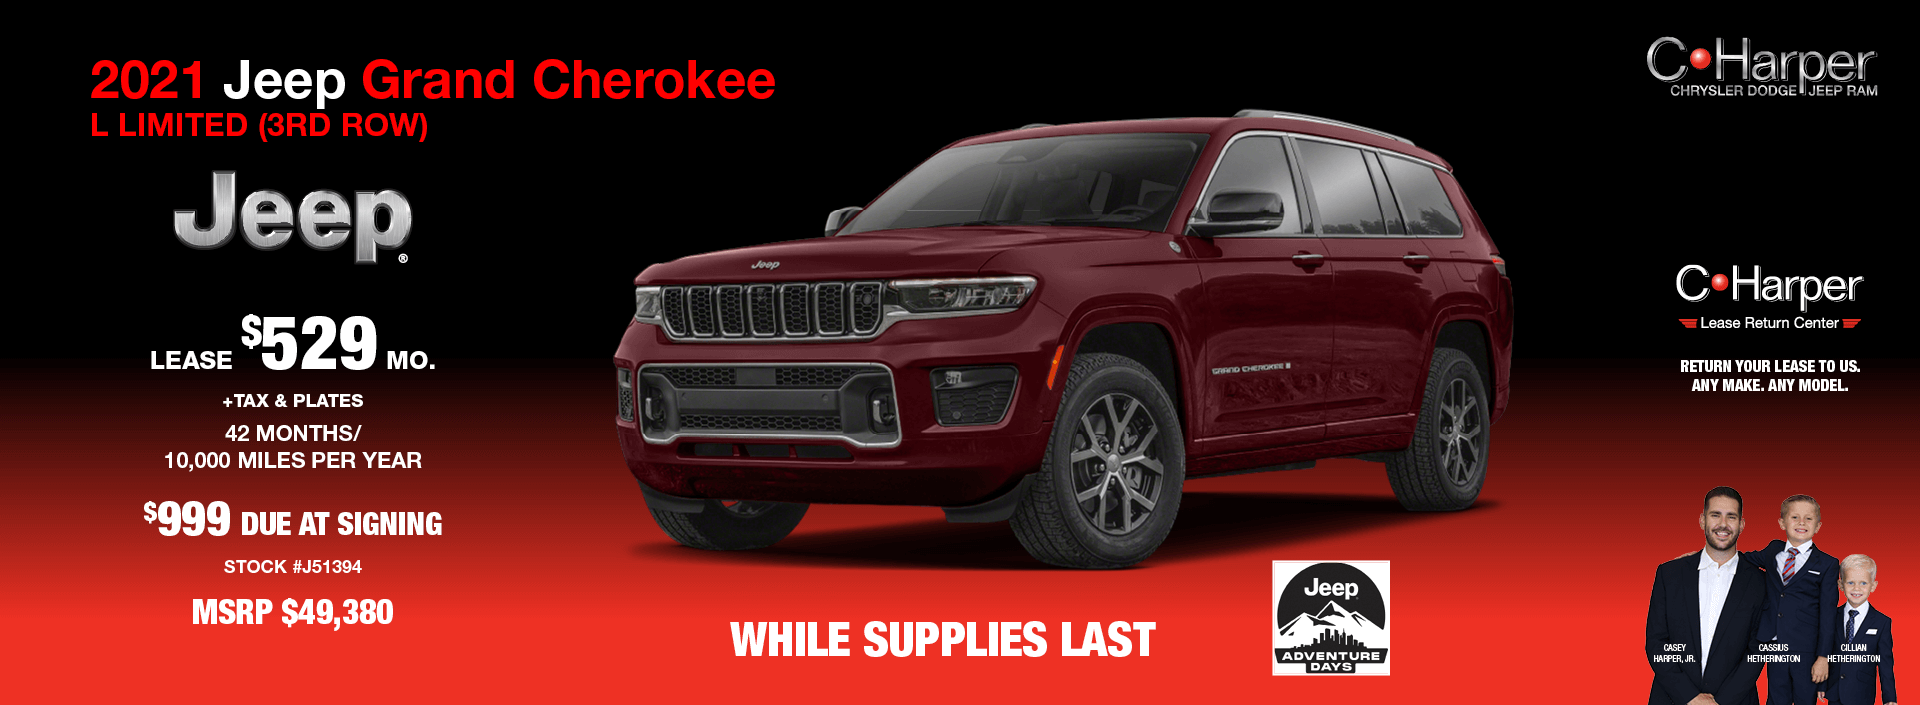 2021 Jeep Grand Cherokee L Limited (3rd Row)